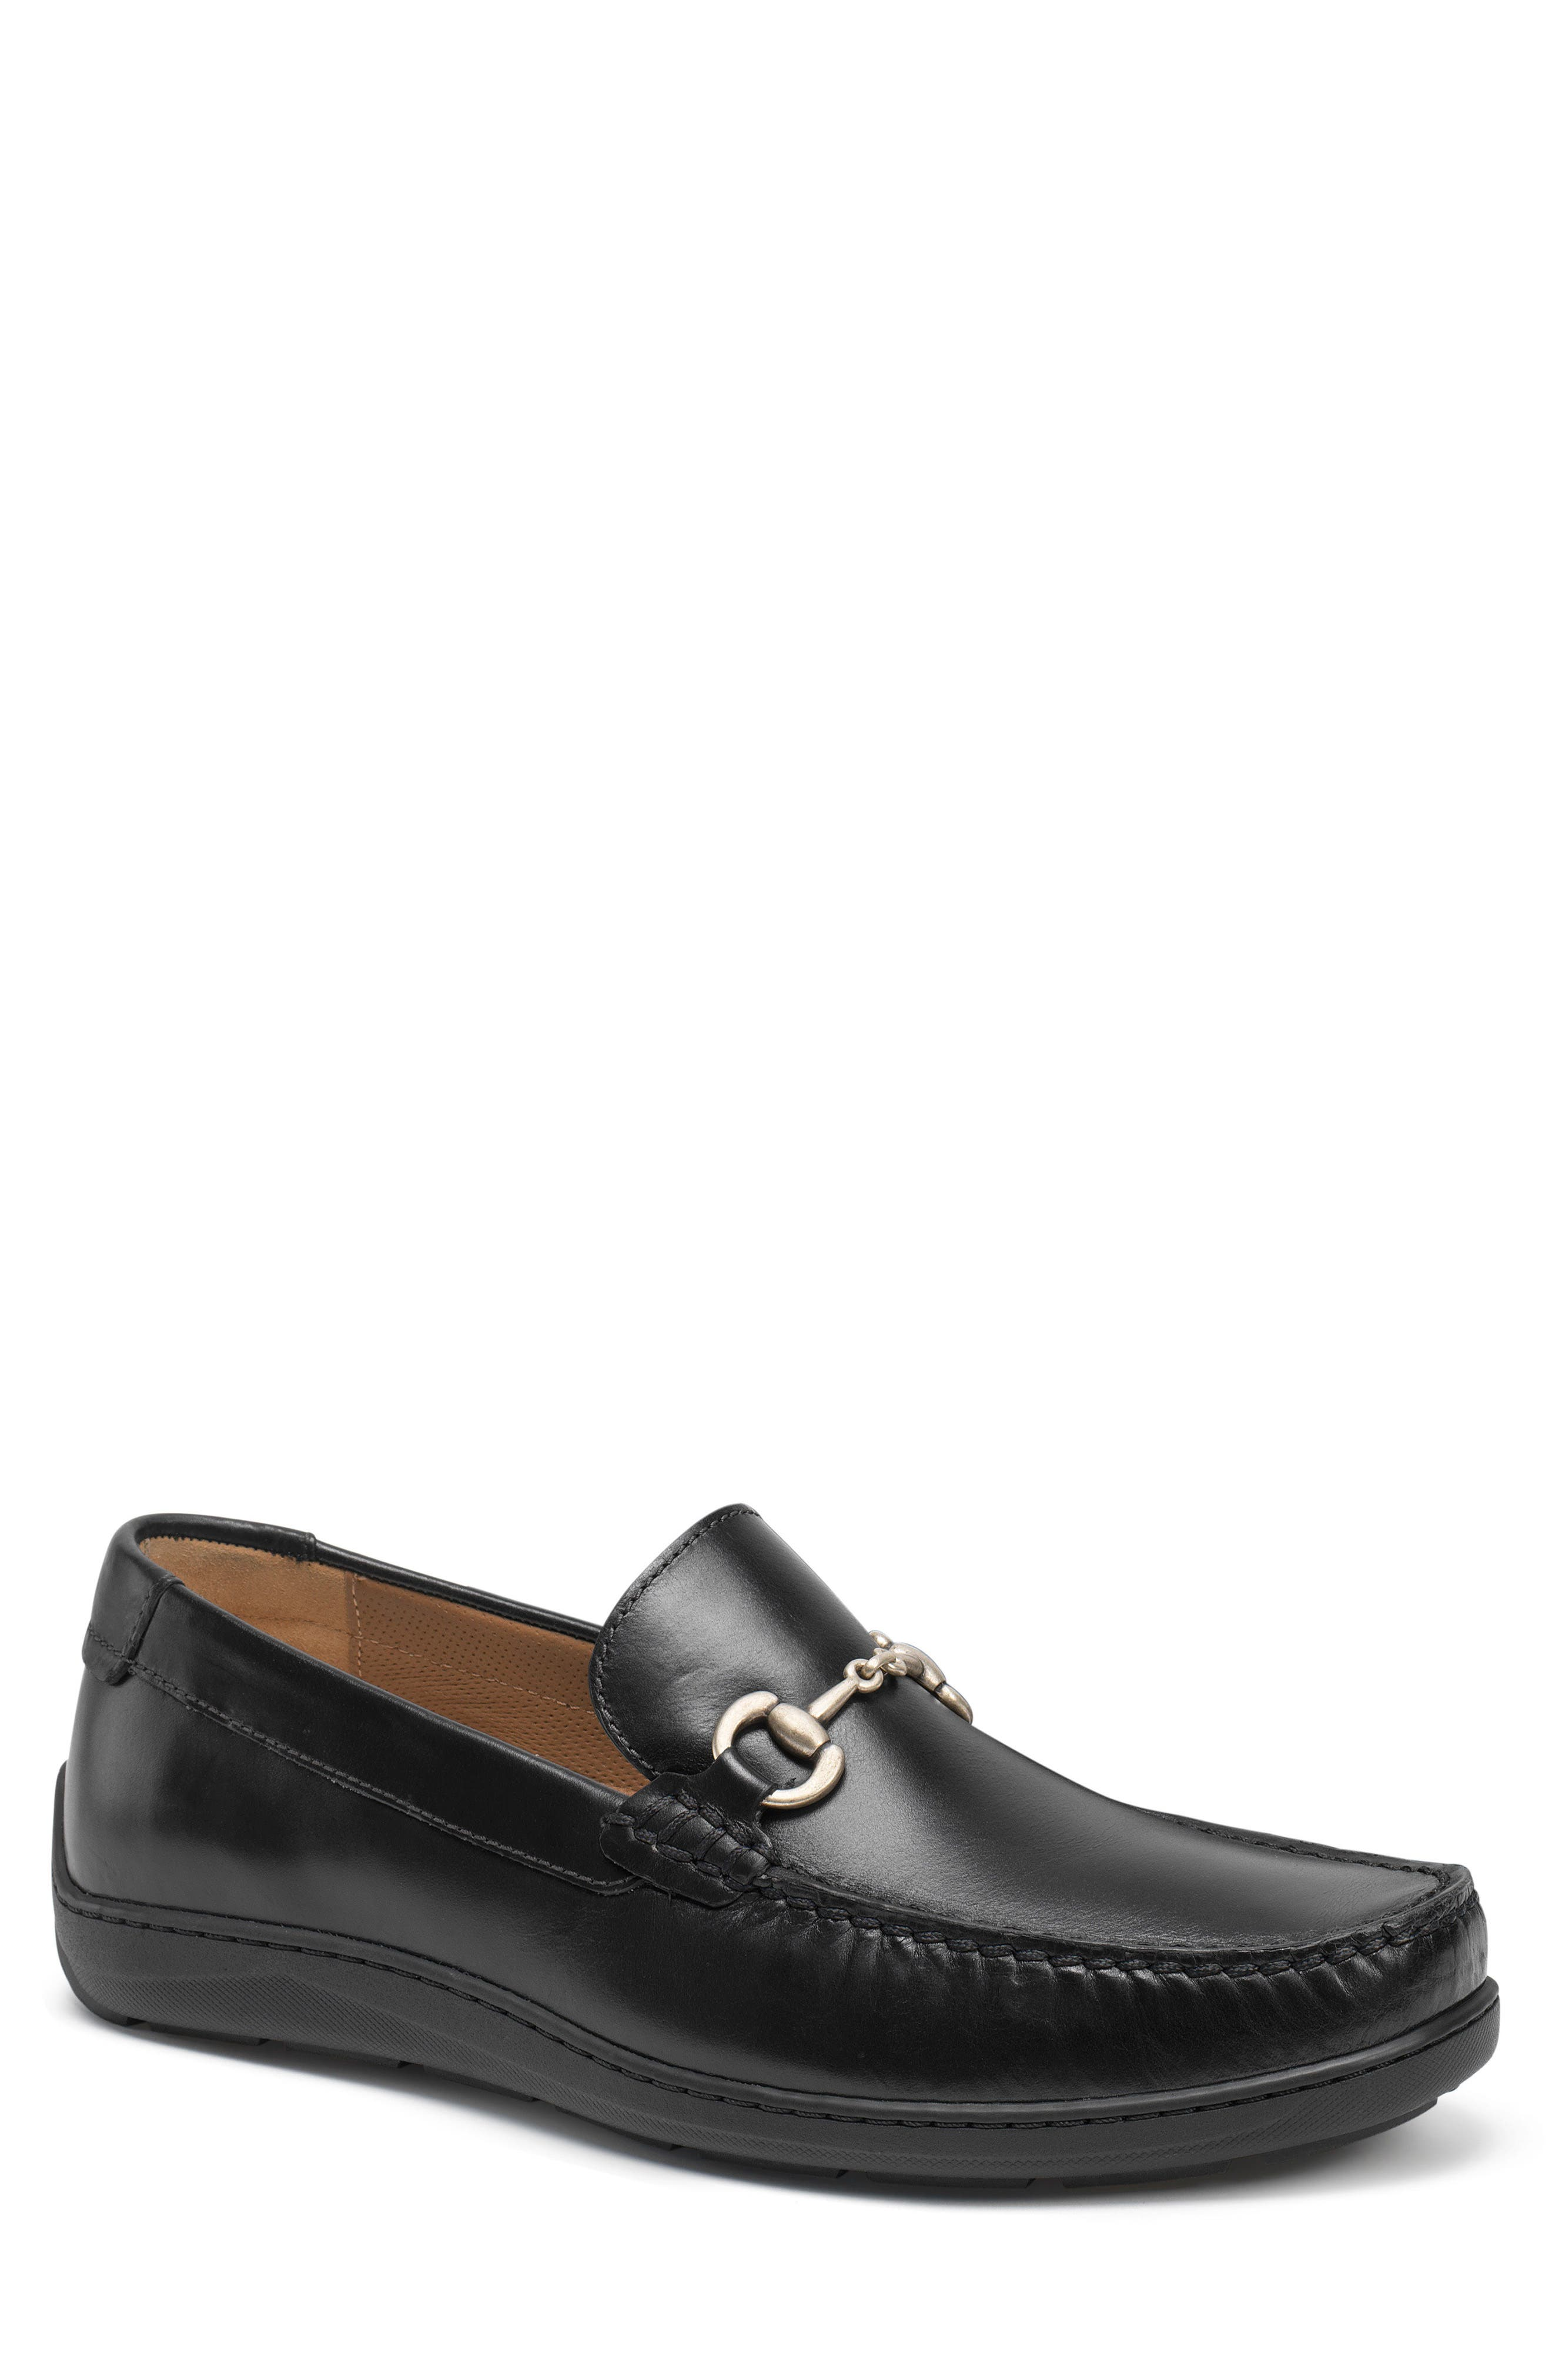 Stalworth Bit Loafer,                             Main thumbnail 1, color,                             001